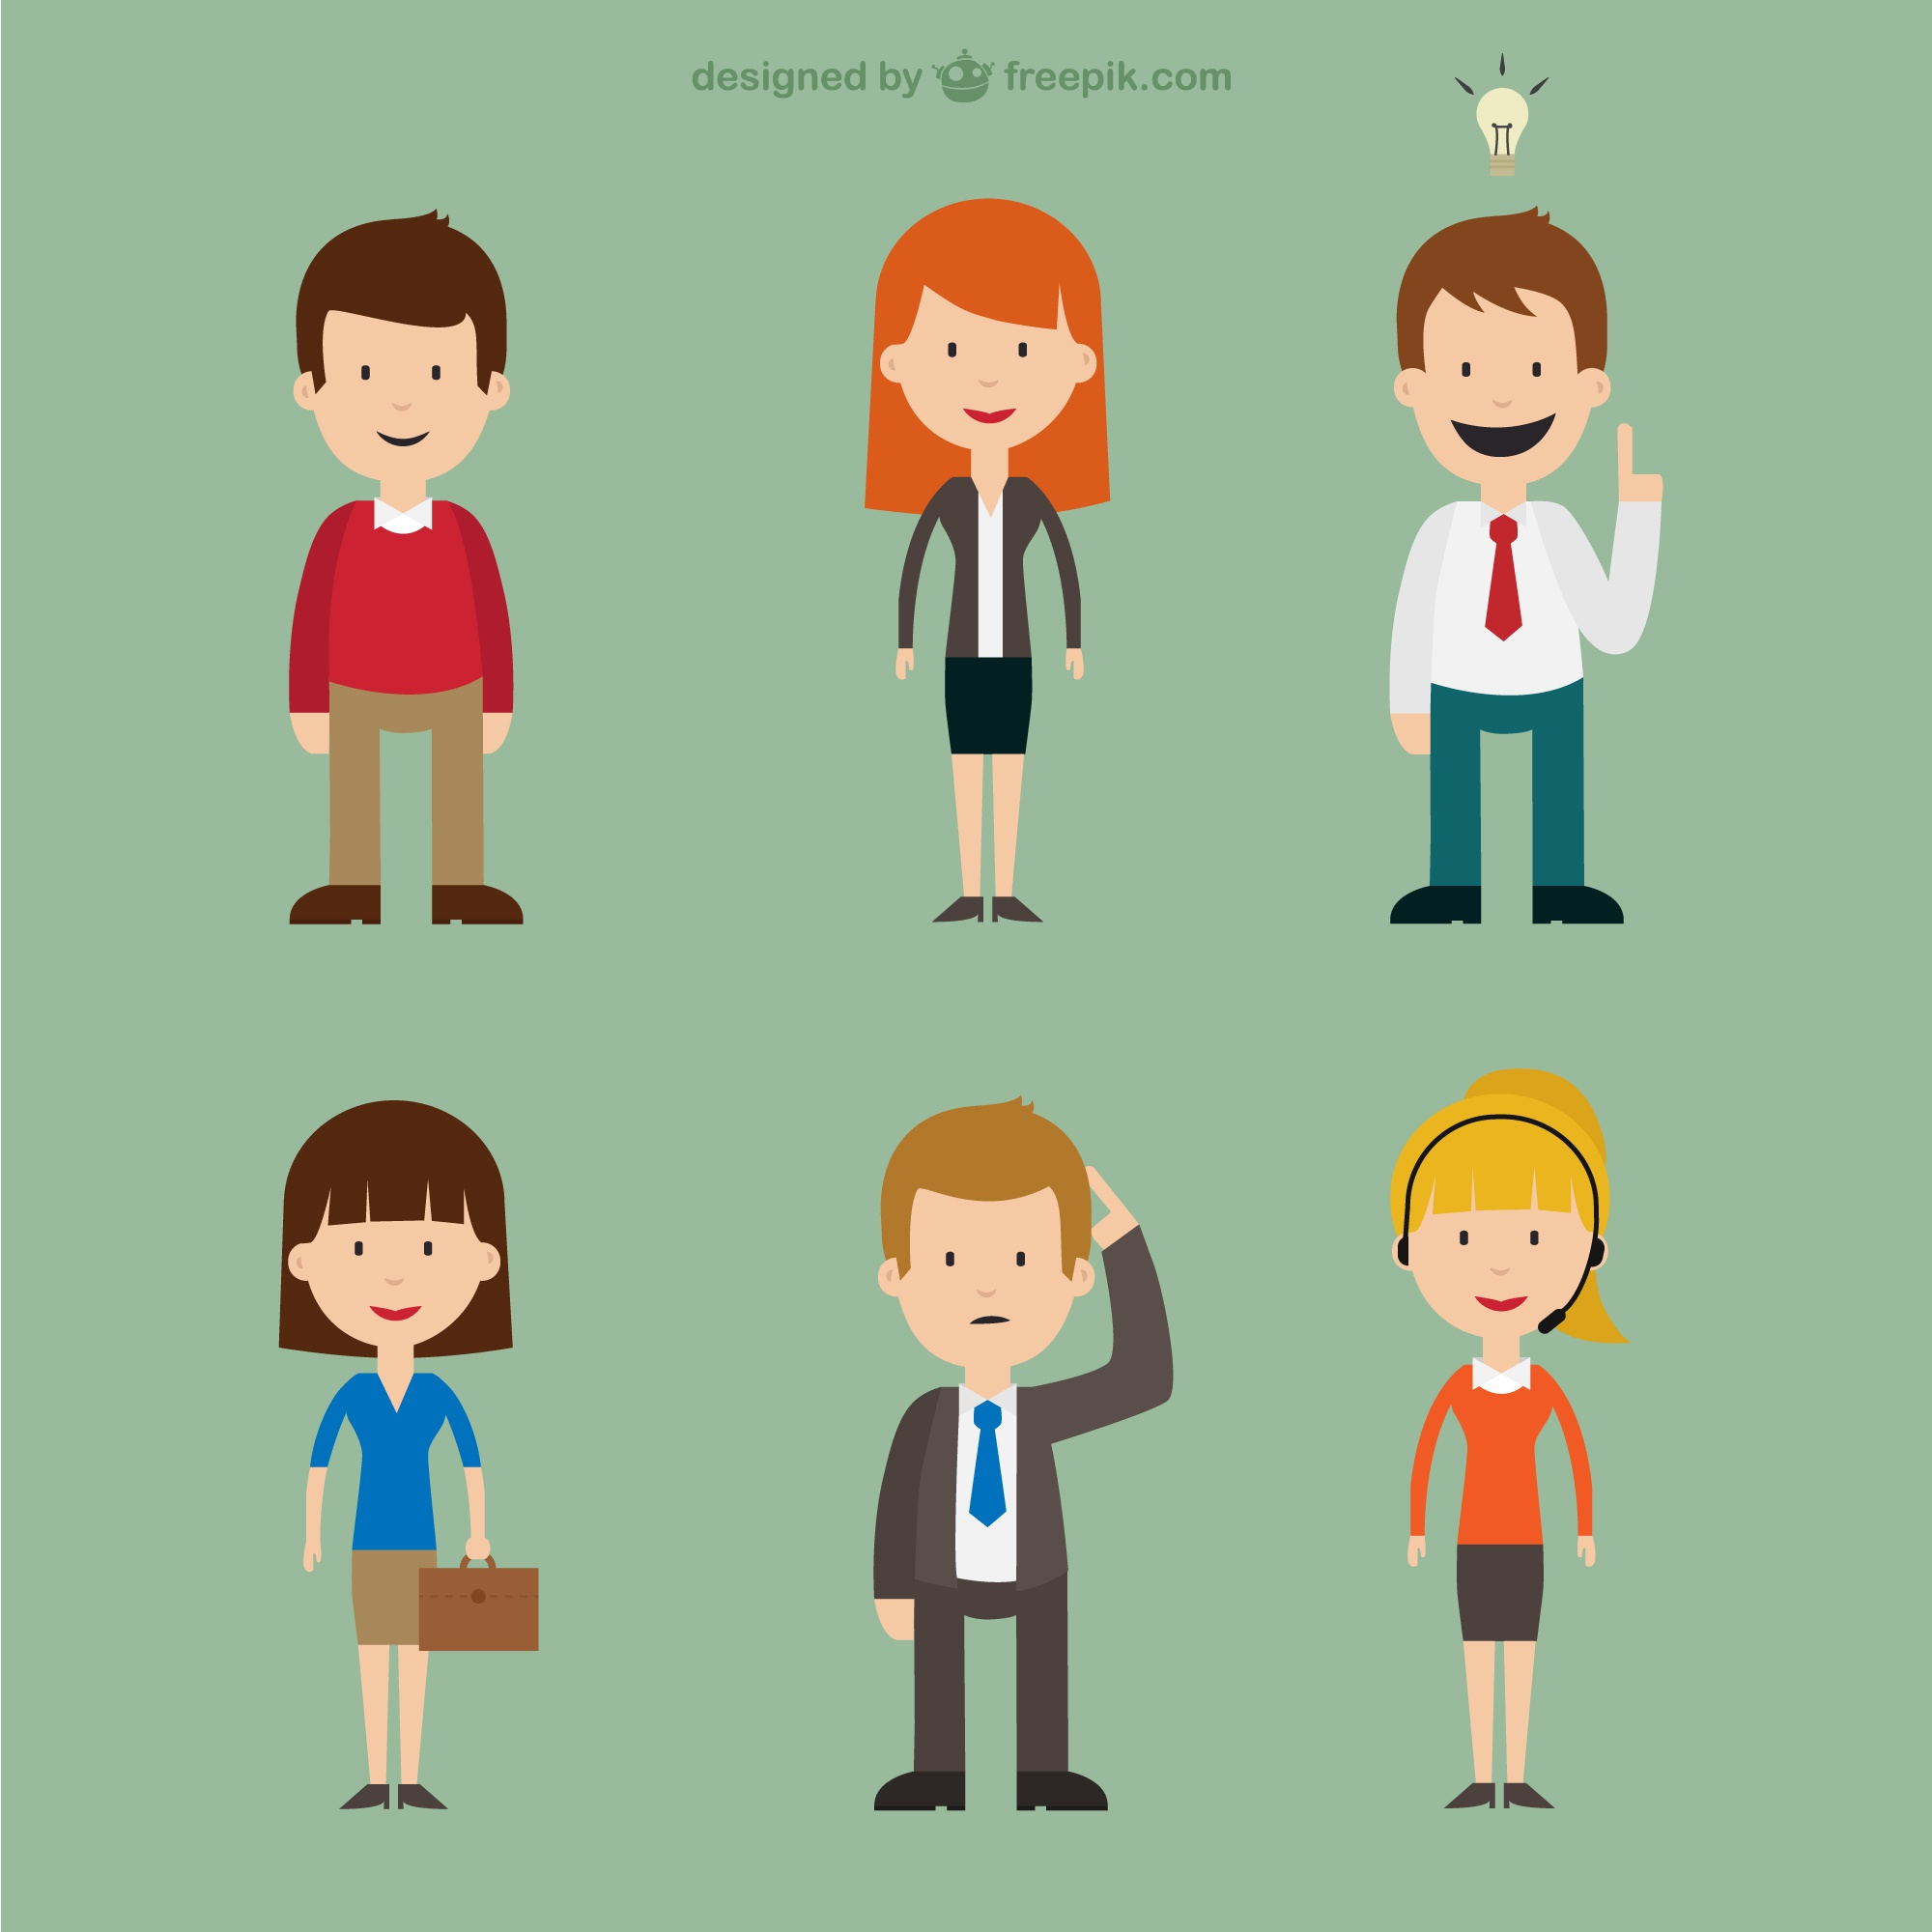 People cartoon characters